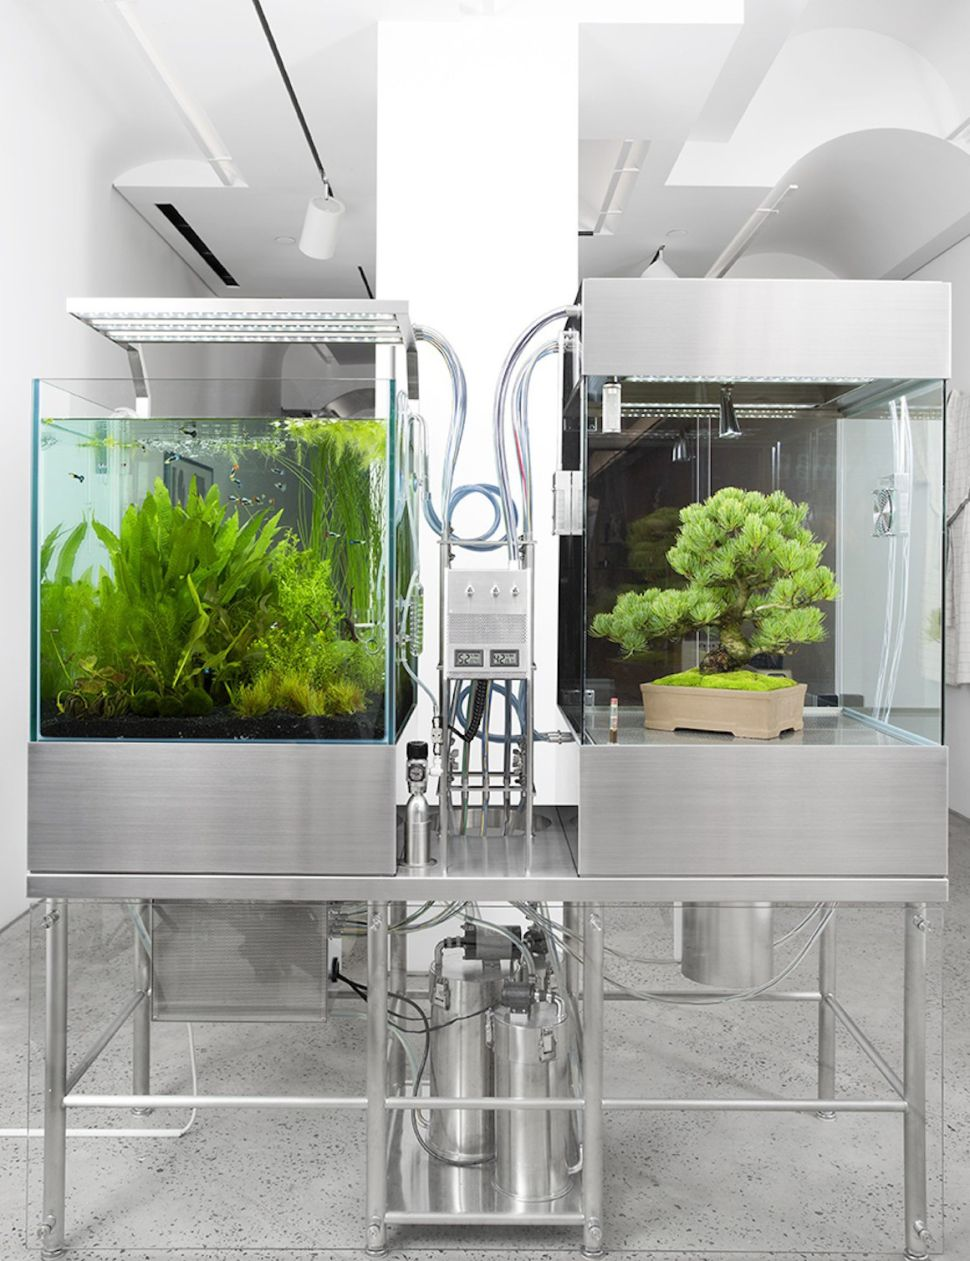 A Cult Artist/Designer Builds a Shiny Ecosystem in Chelsea